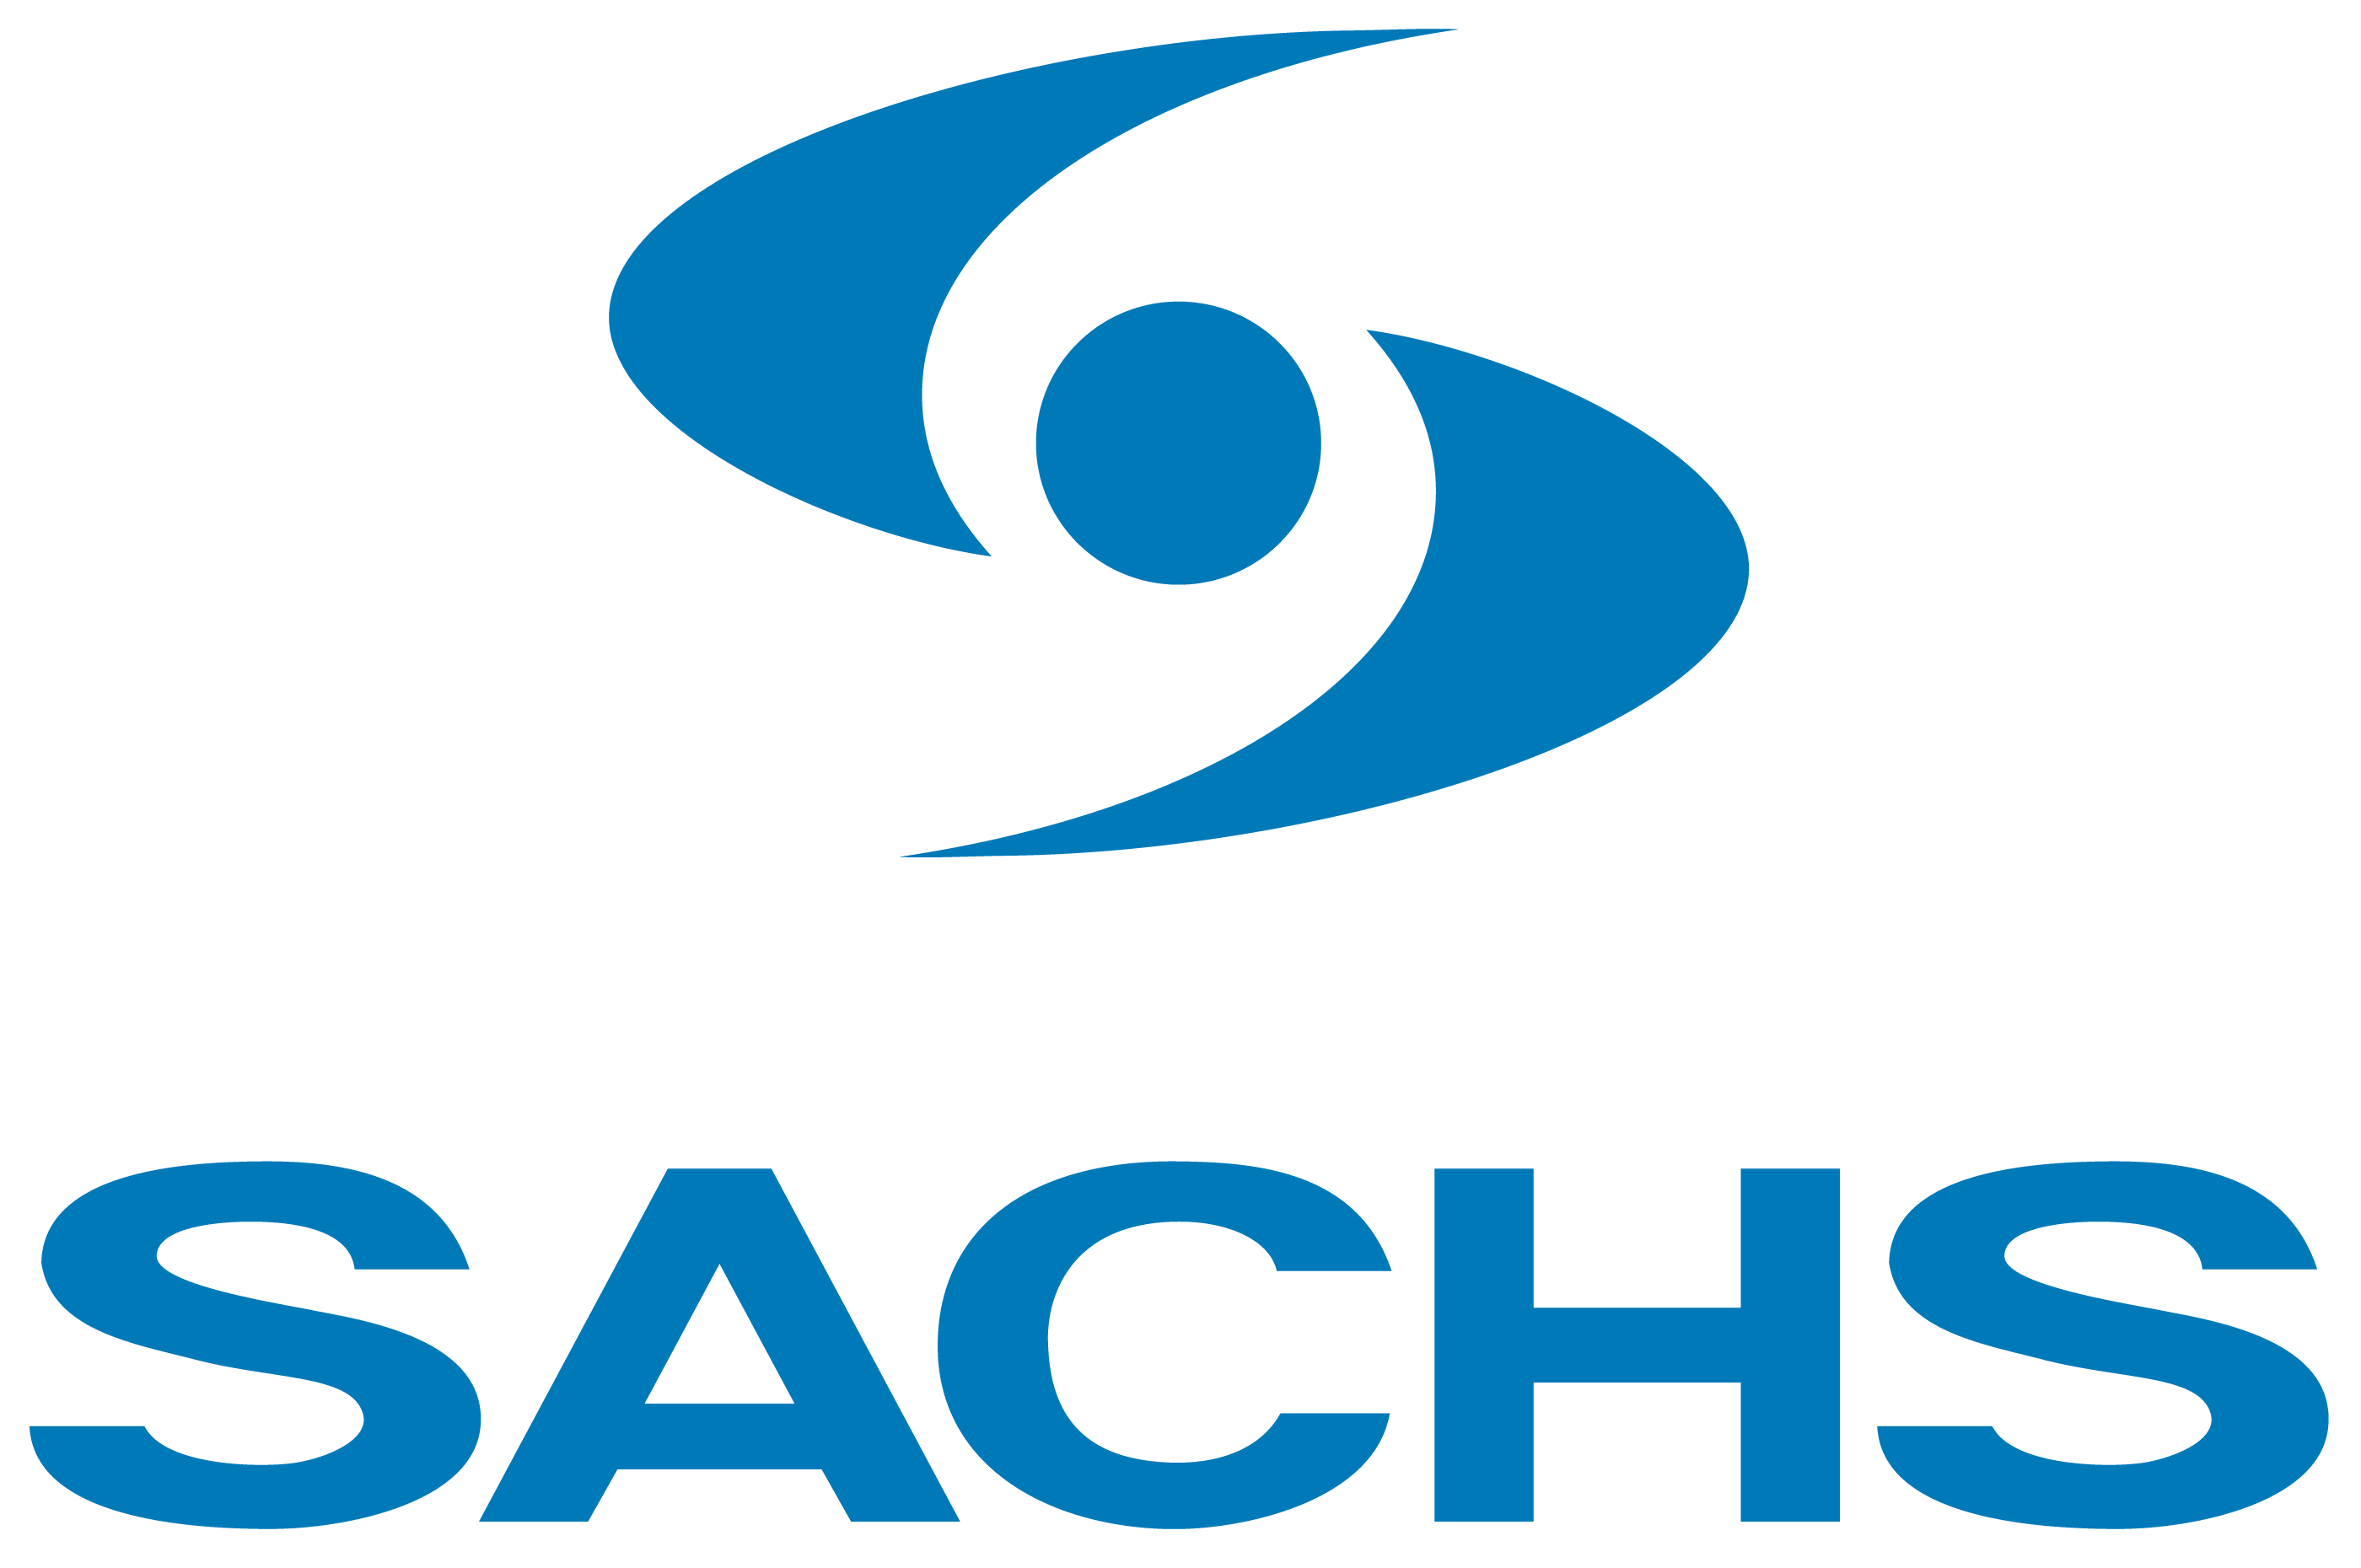 Sachs Logo Motorcycle Brands